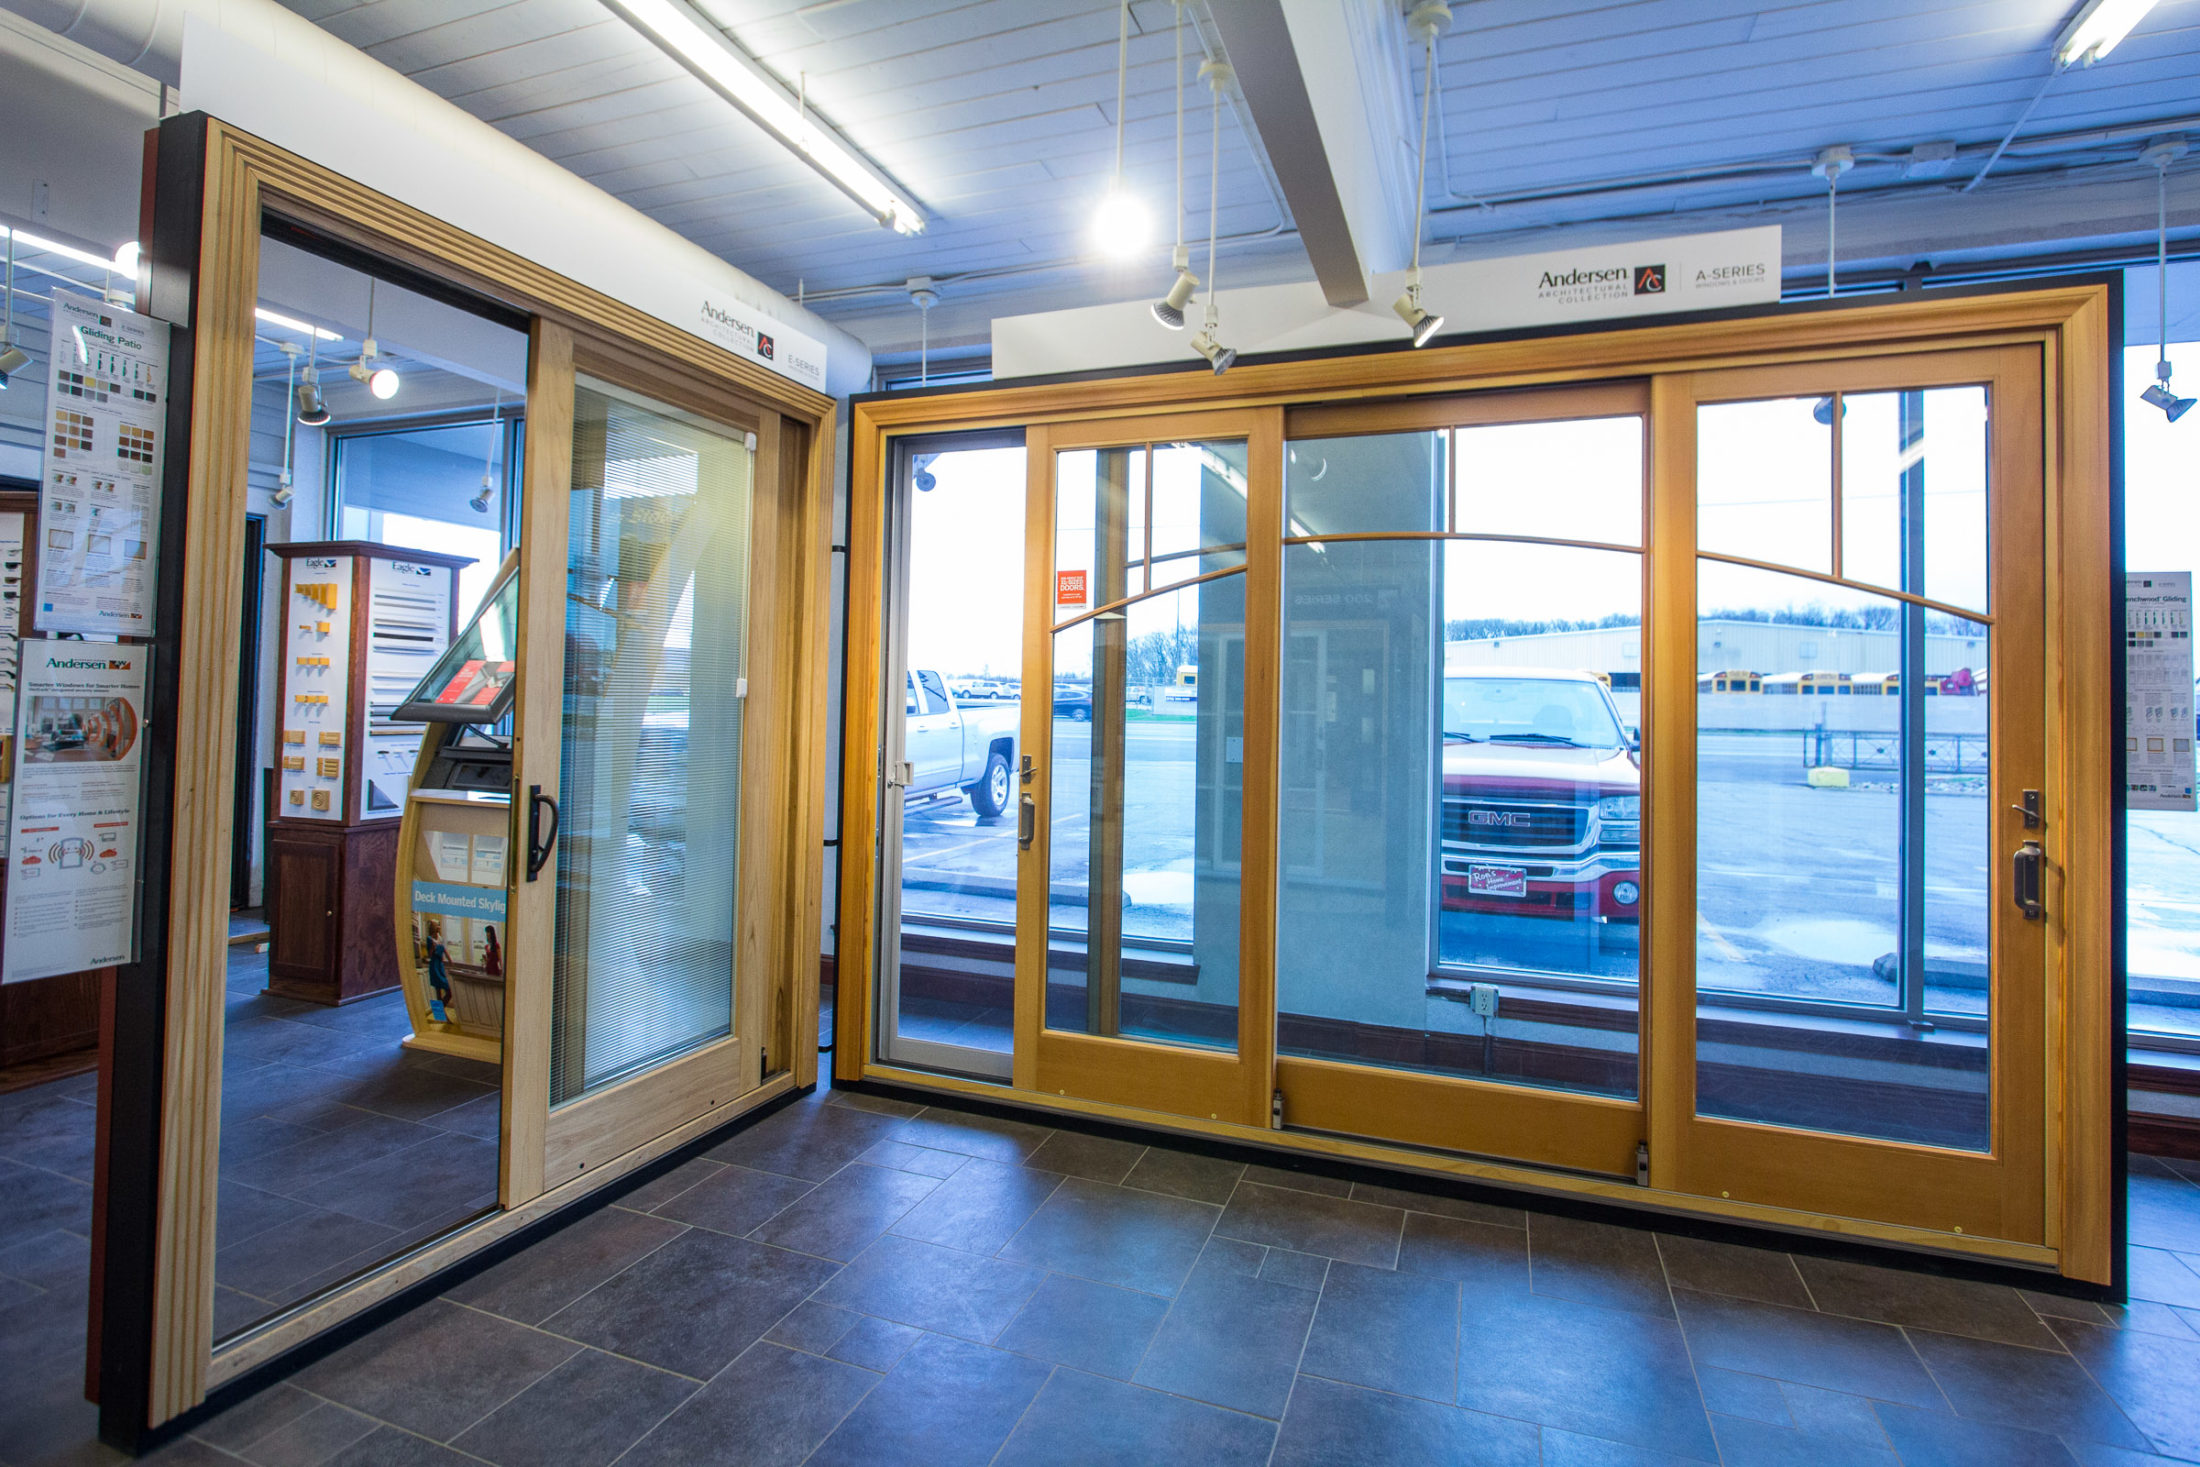 We Have A Full Selection Of Wood, Composite (Fibrex), Vinyl, Aluminum, And  Fiberglass Windows And Door Options To Help Complete Your Project No Matter  What ...